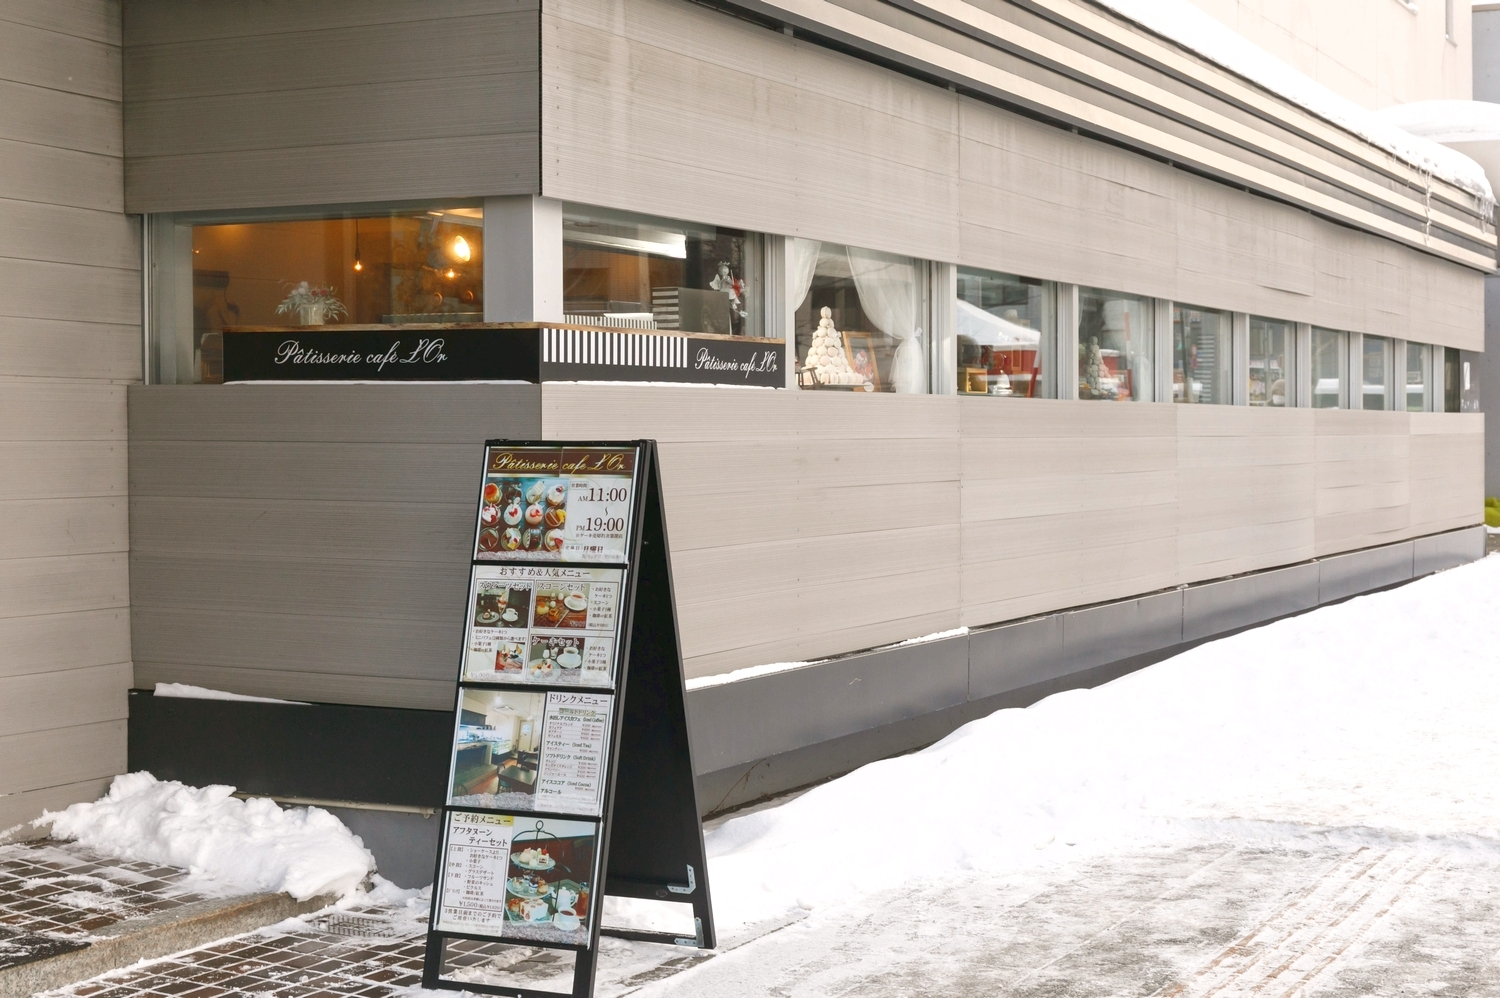 Patisserie cafe L'Or(パティスリーカフェロール)_1